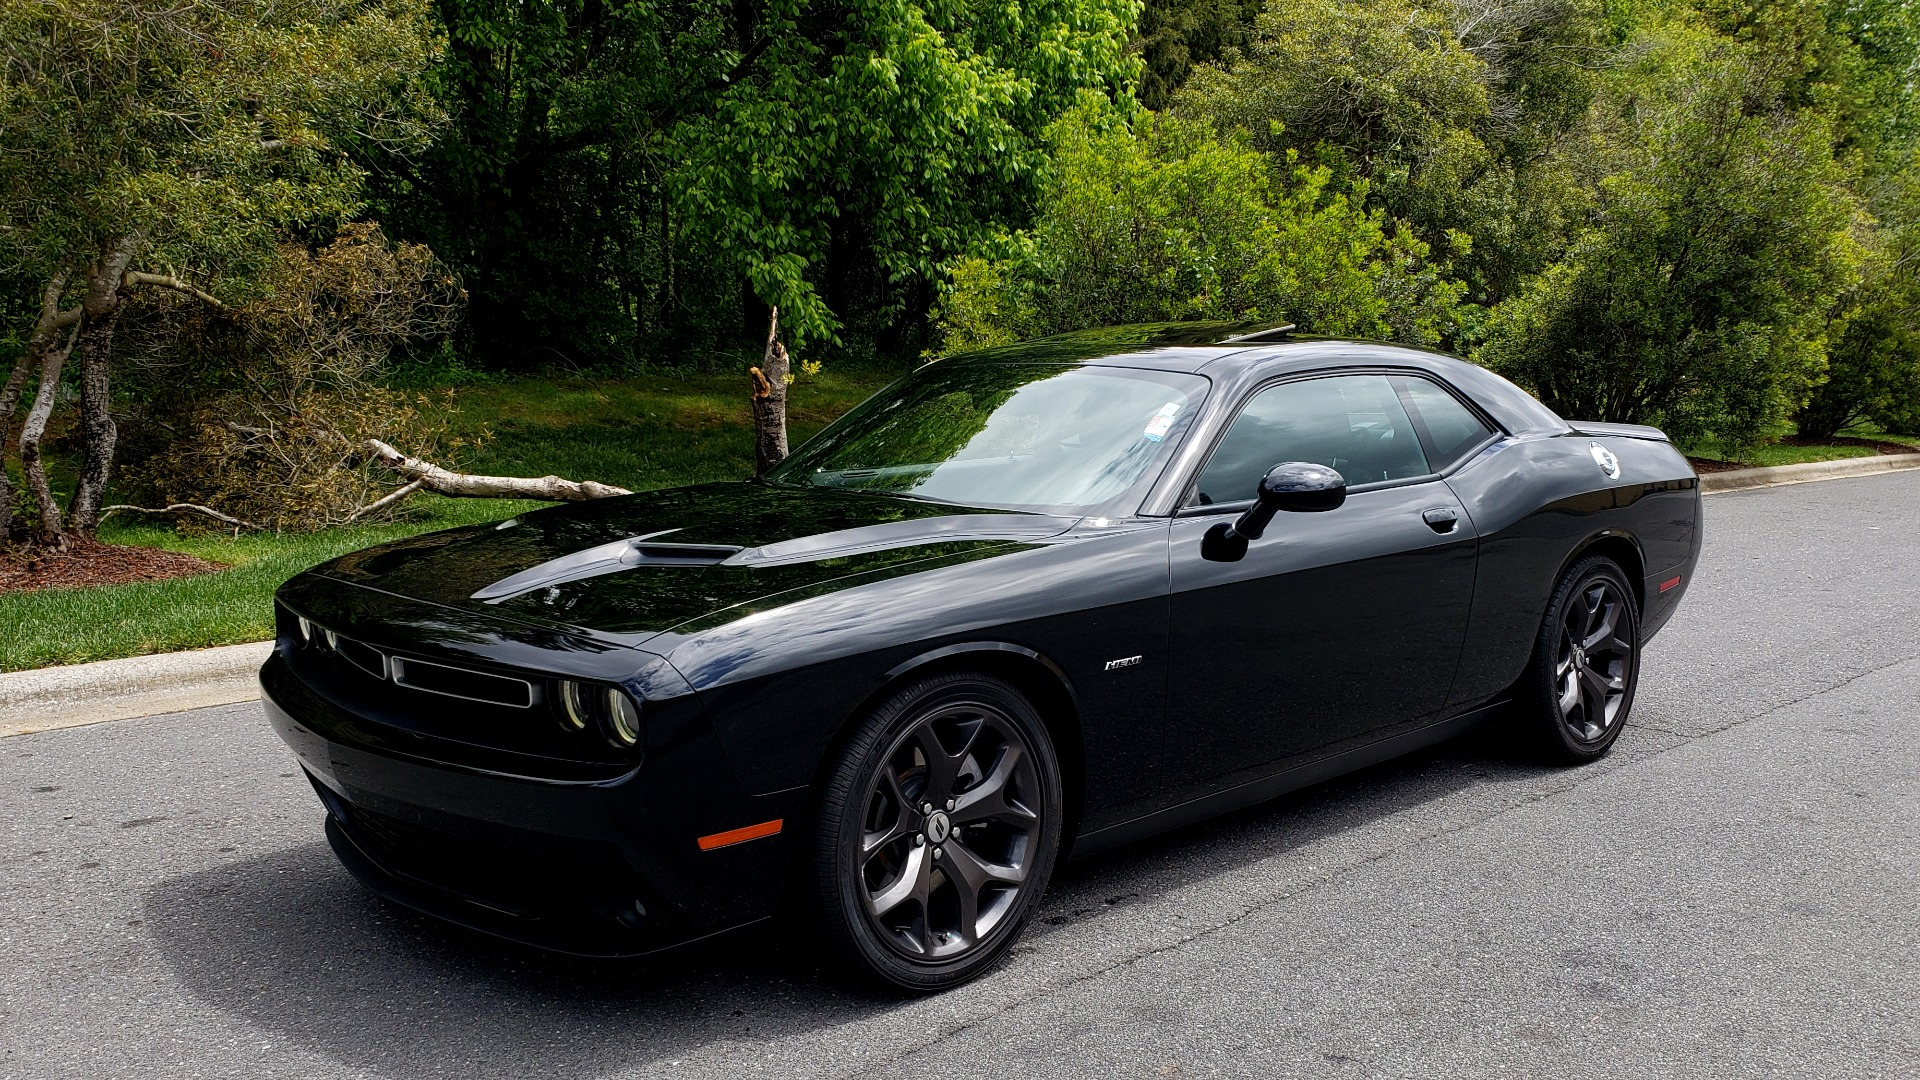 Used 2017 Dodge CHALLENGER R/T / 5.7L HEMI V8 / 8-SPD AUTO / SUNROOF / REARVIEW for sale Sold at Formula Imports in Charlotte NC 28227 1